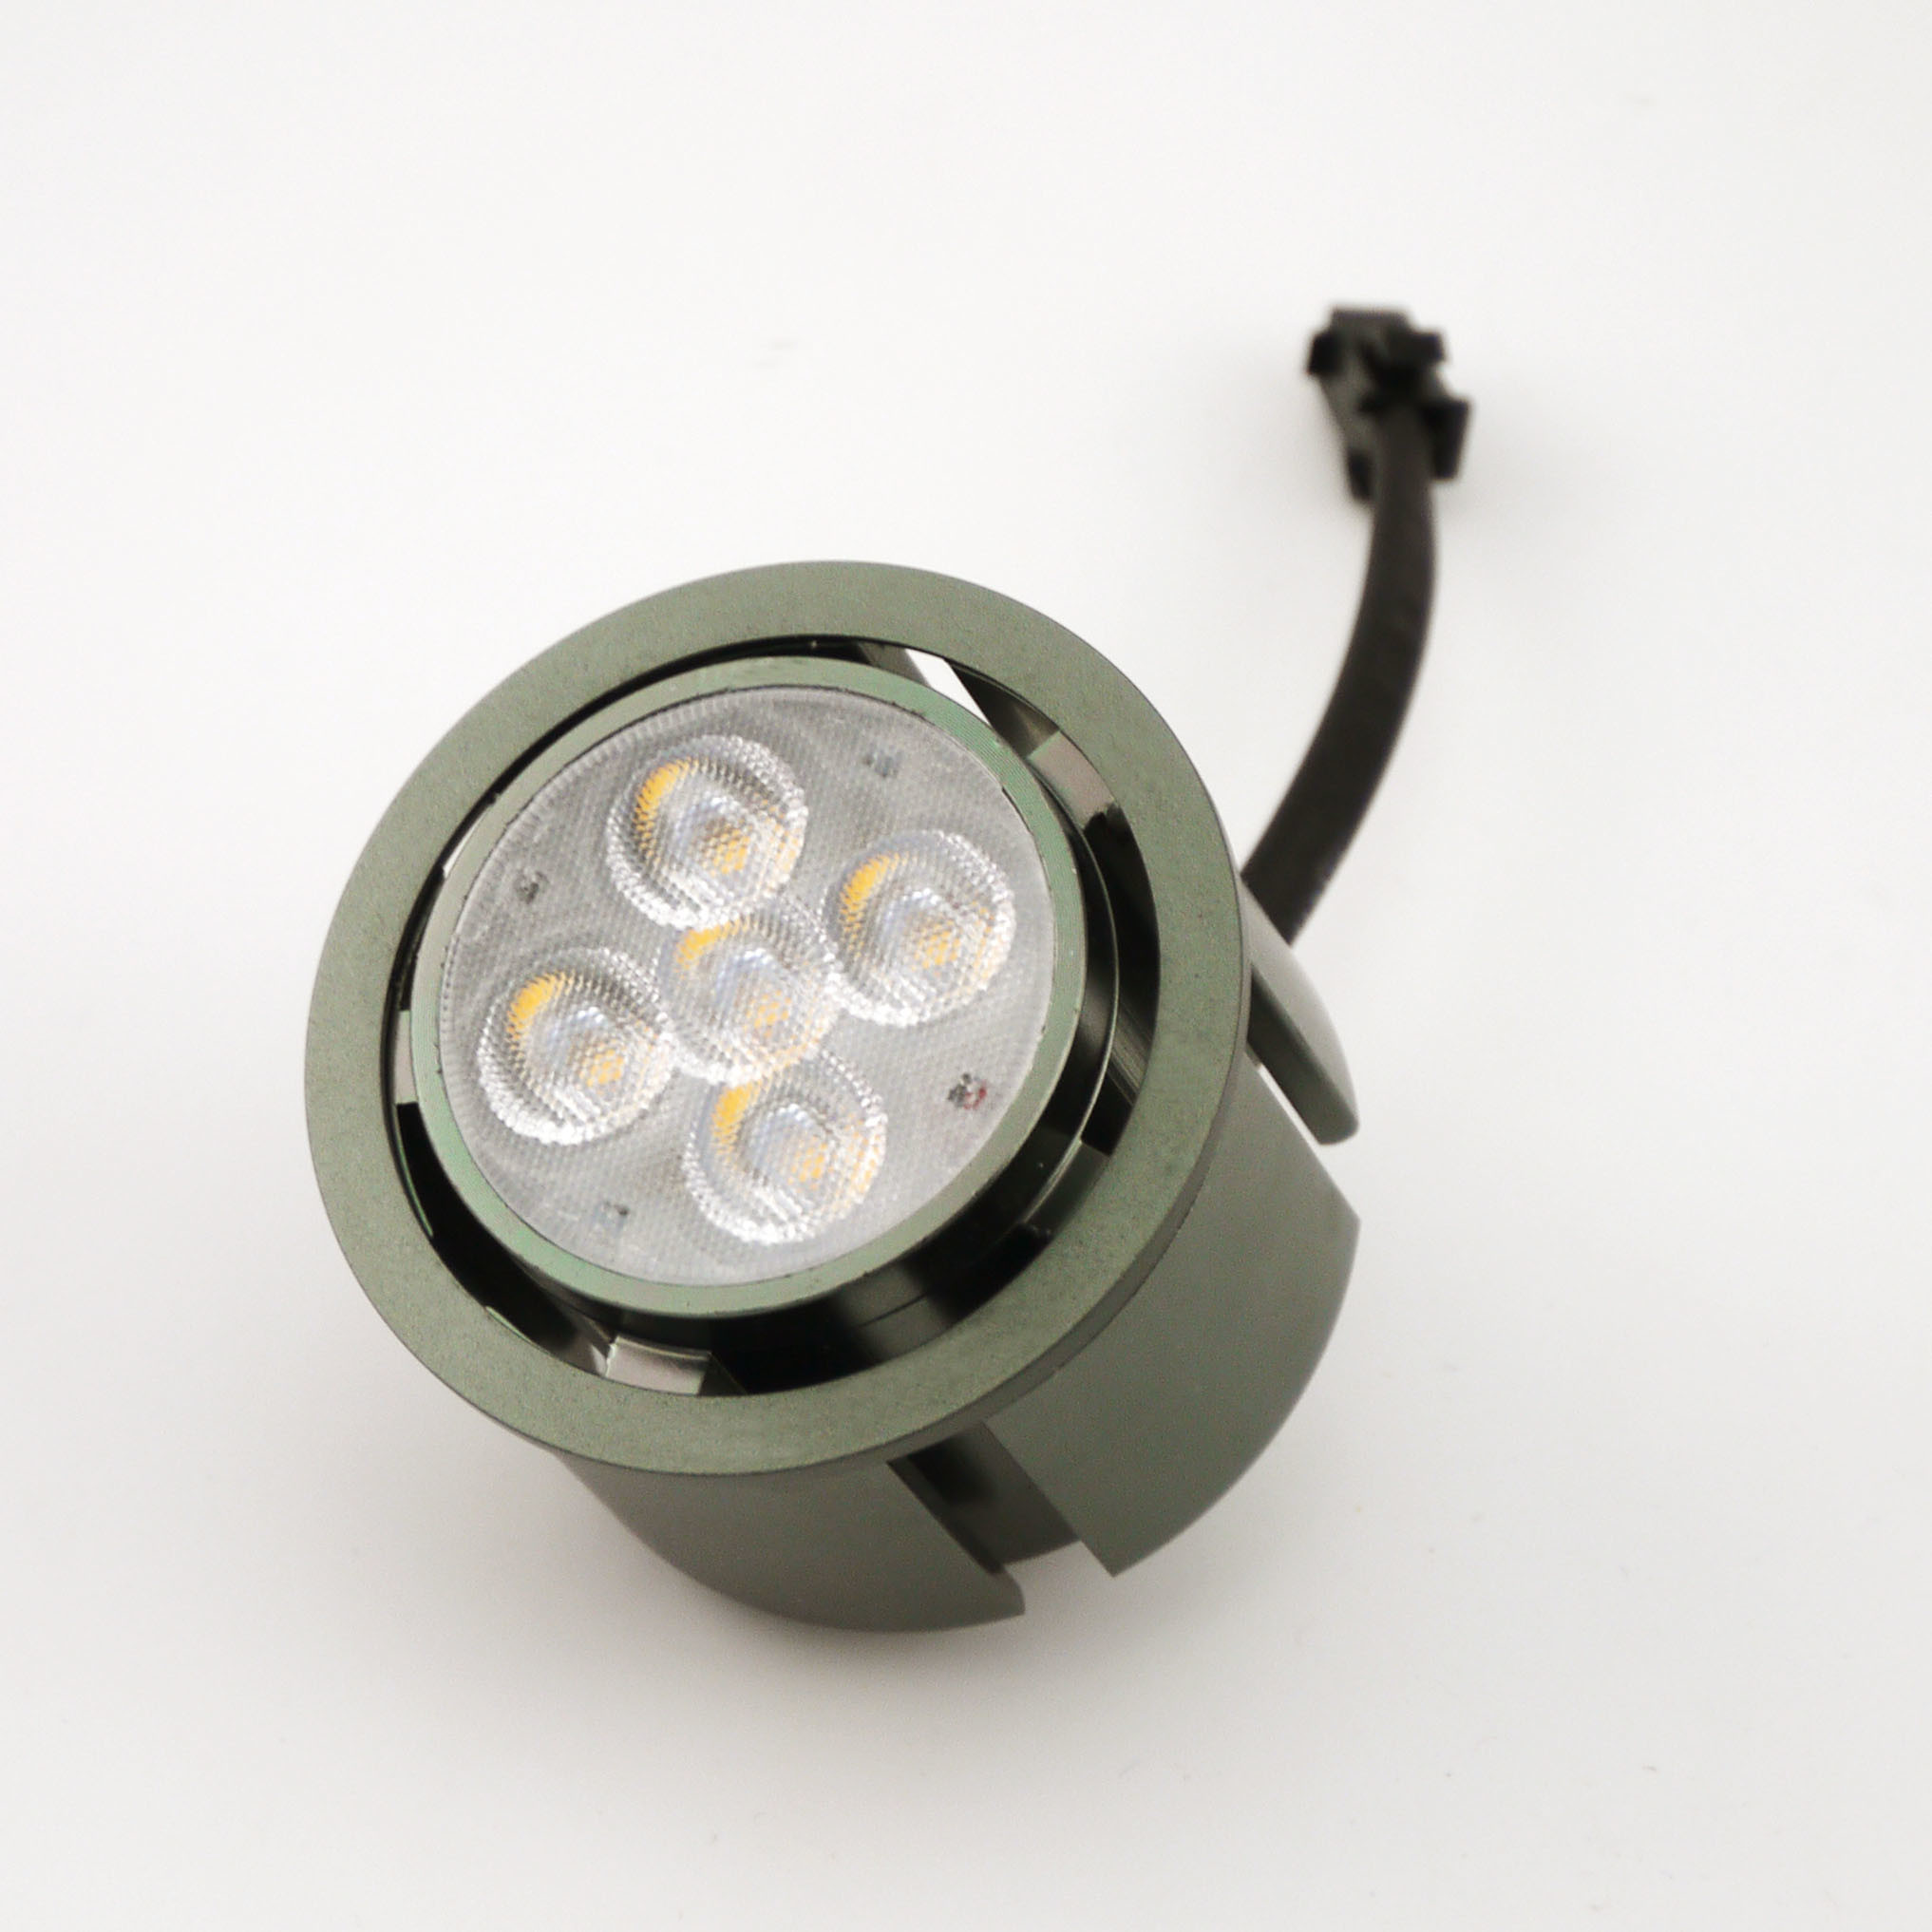 Pure Aluminum 5W SMD External Power Supply LED Spotlight (external power supply) Lt8000-5W